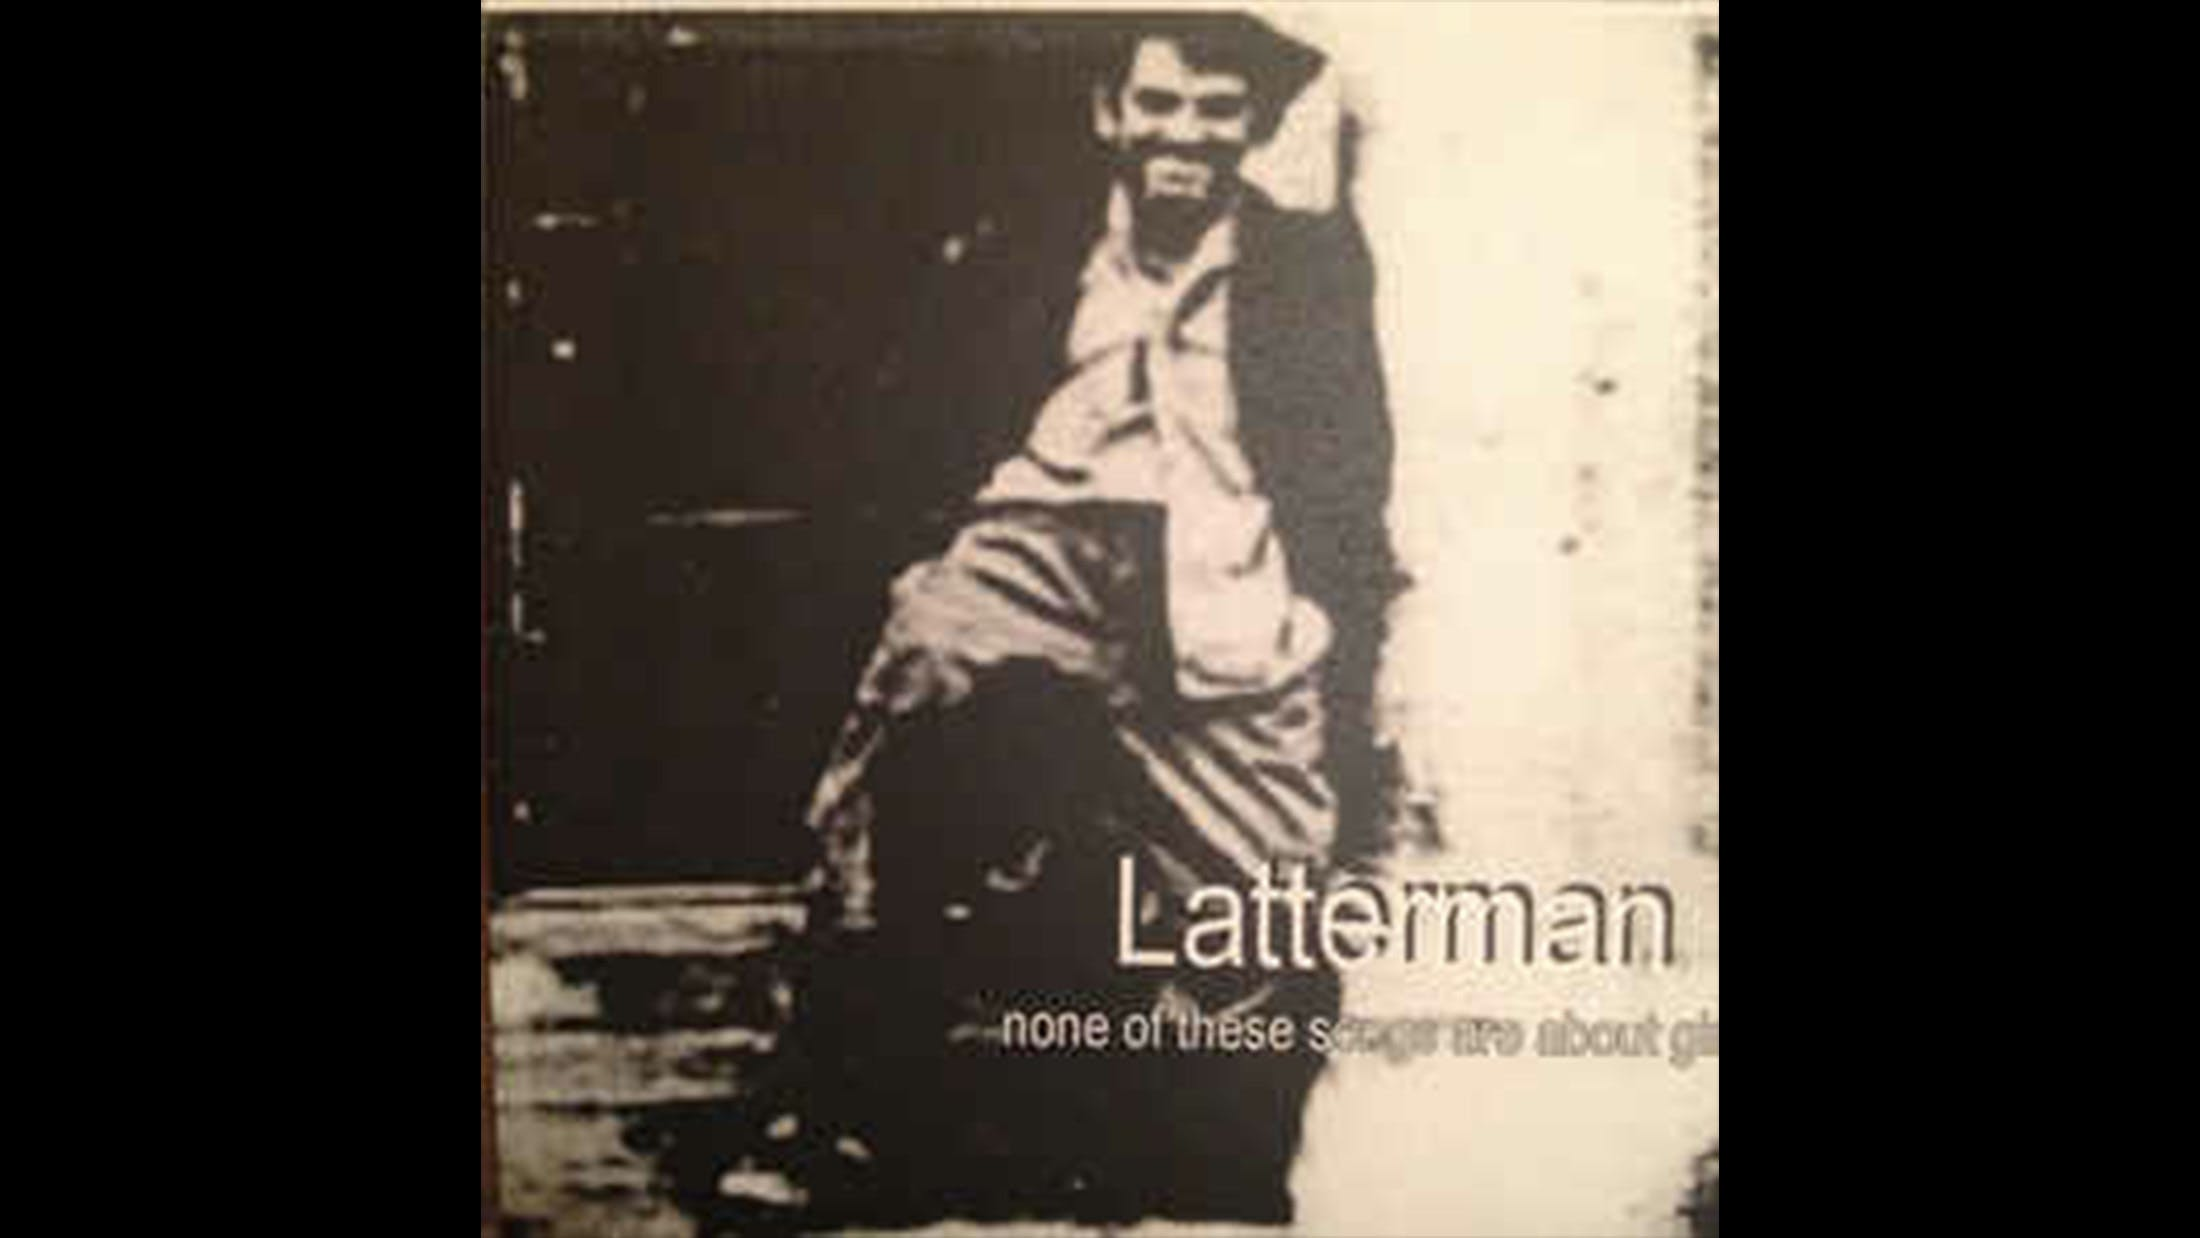 43. Latterman - None Of These Songs Are About Girls (2000)